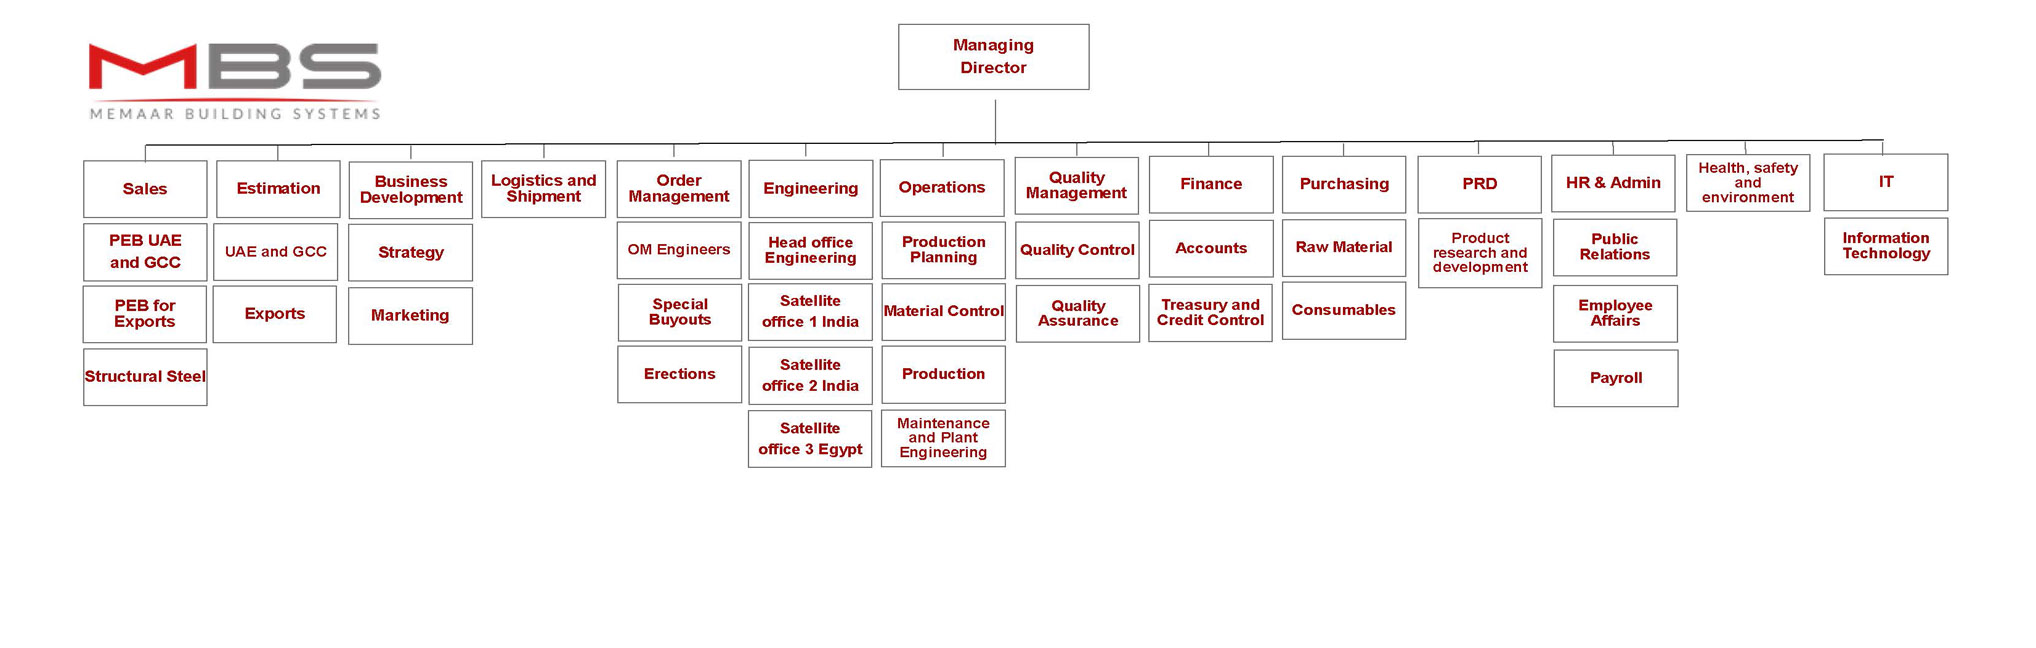 MBS Organization Structure